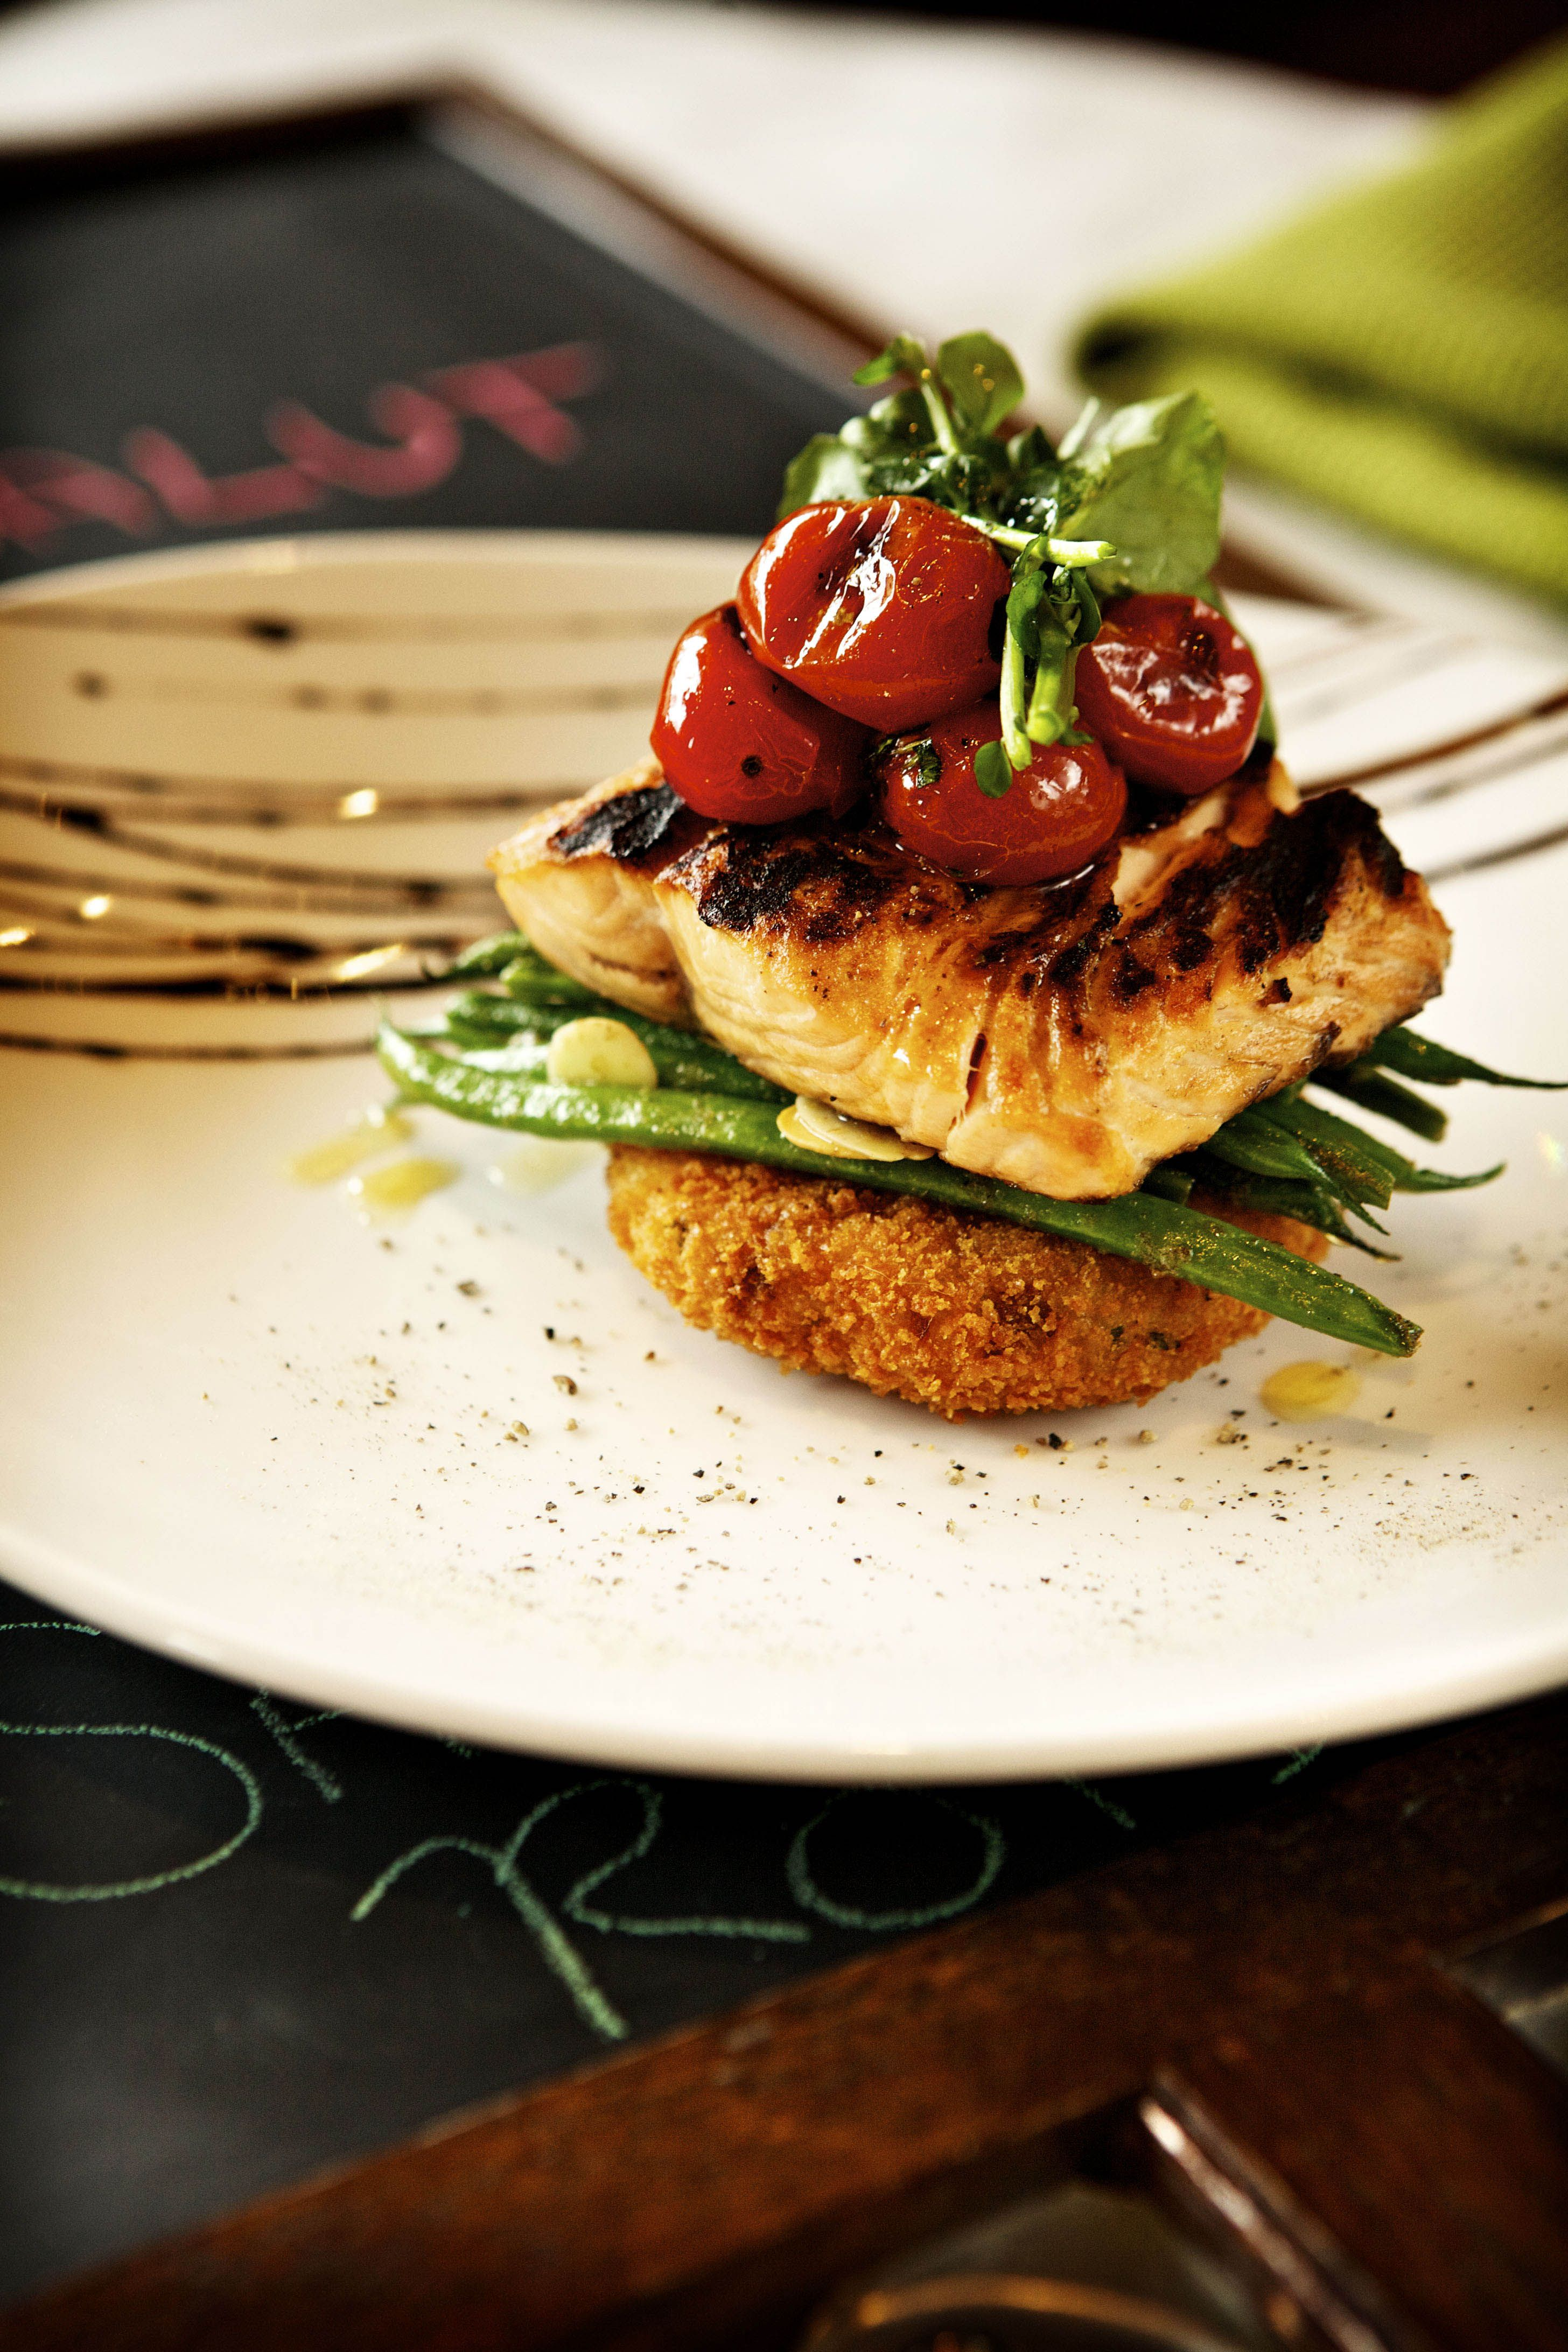 Salut is a warm and welcoming restaurant, with a bistro style menu that captures the freshness and hearty flavors of the French cuisine. They feature a full bar, sandwiches, burgers, brunch and beautiful desserts.